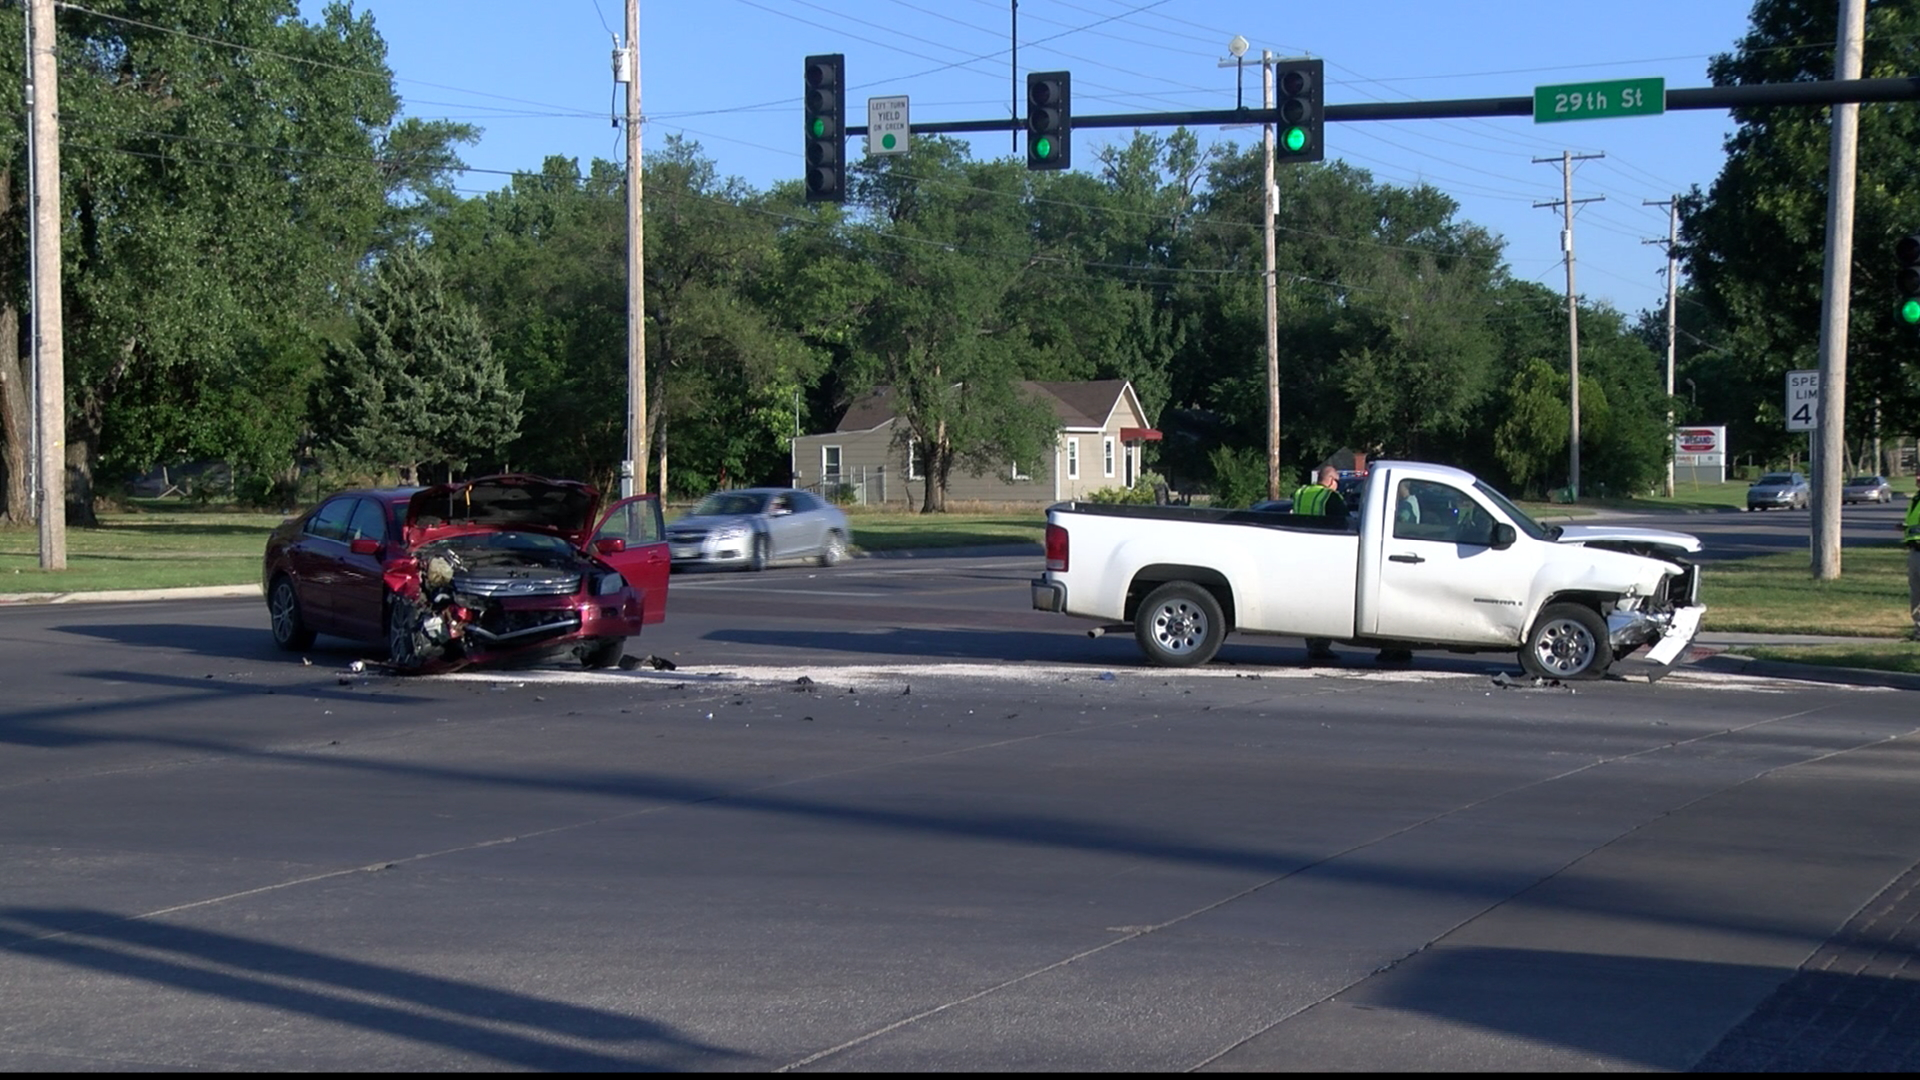 RAW ACCIDENT RIDGE AND 29TH NORTH DDIETZ_frame_230_405504